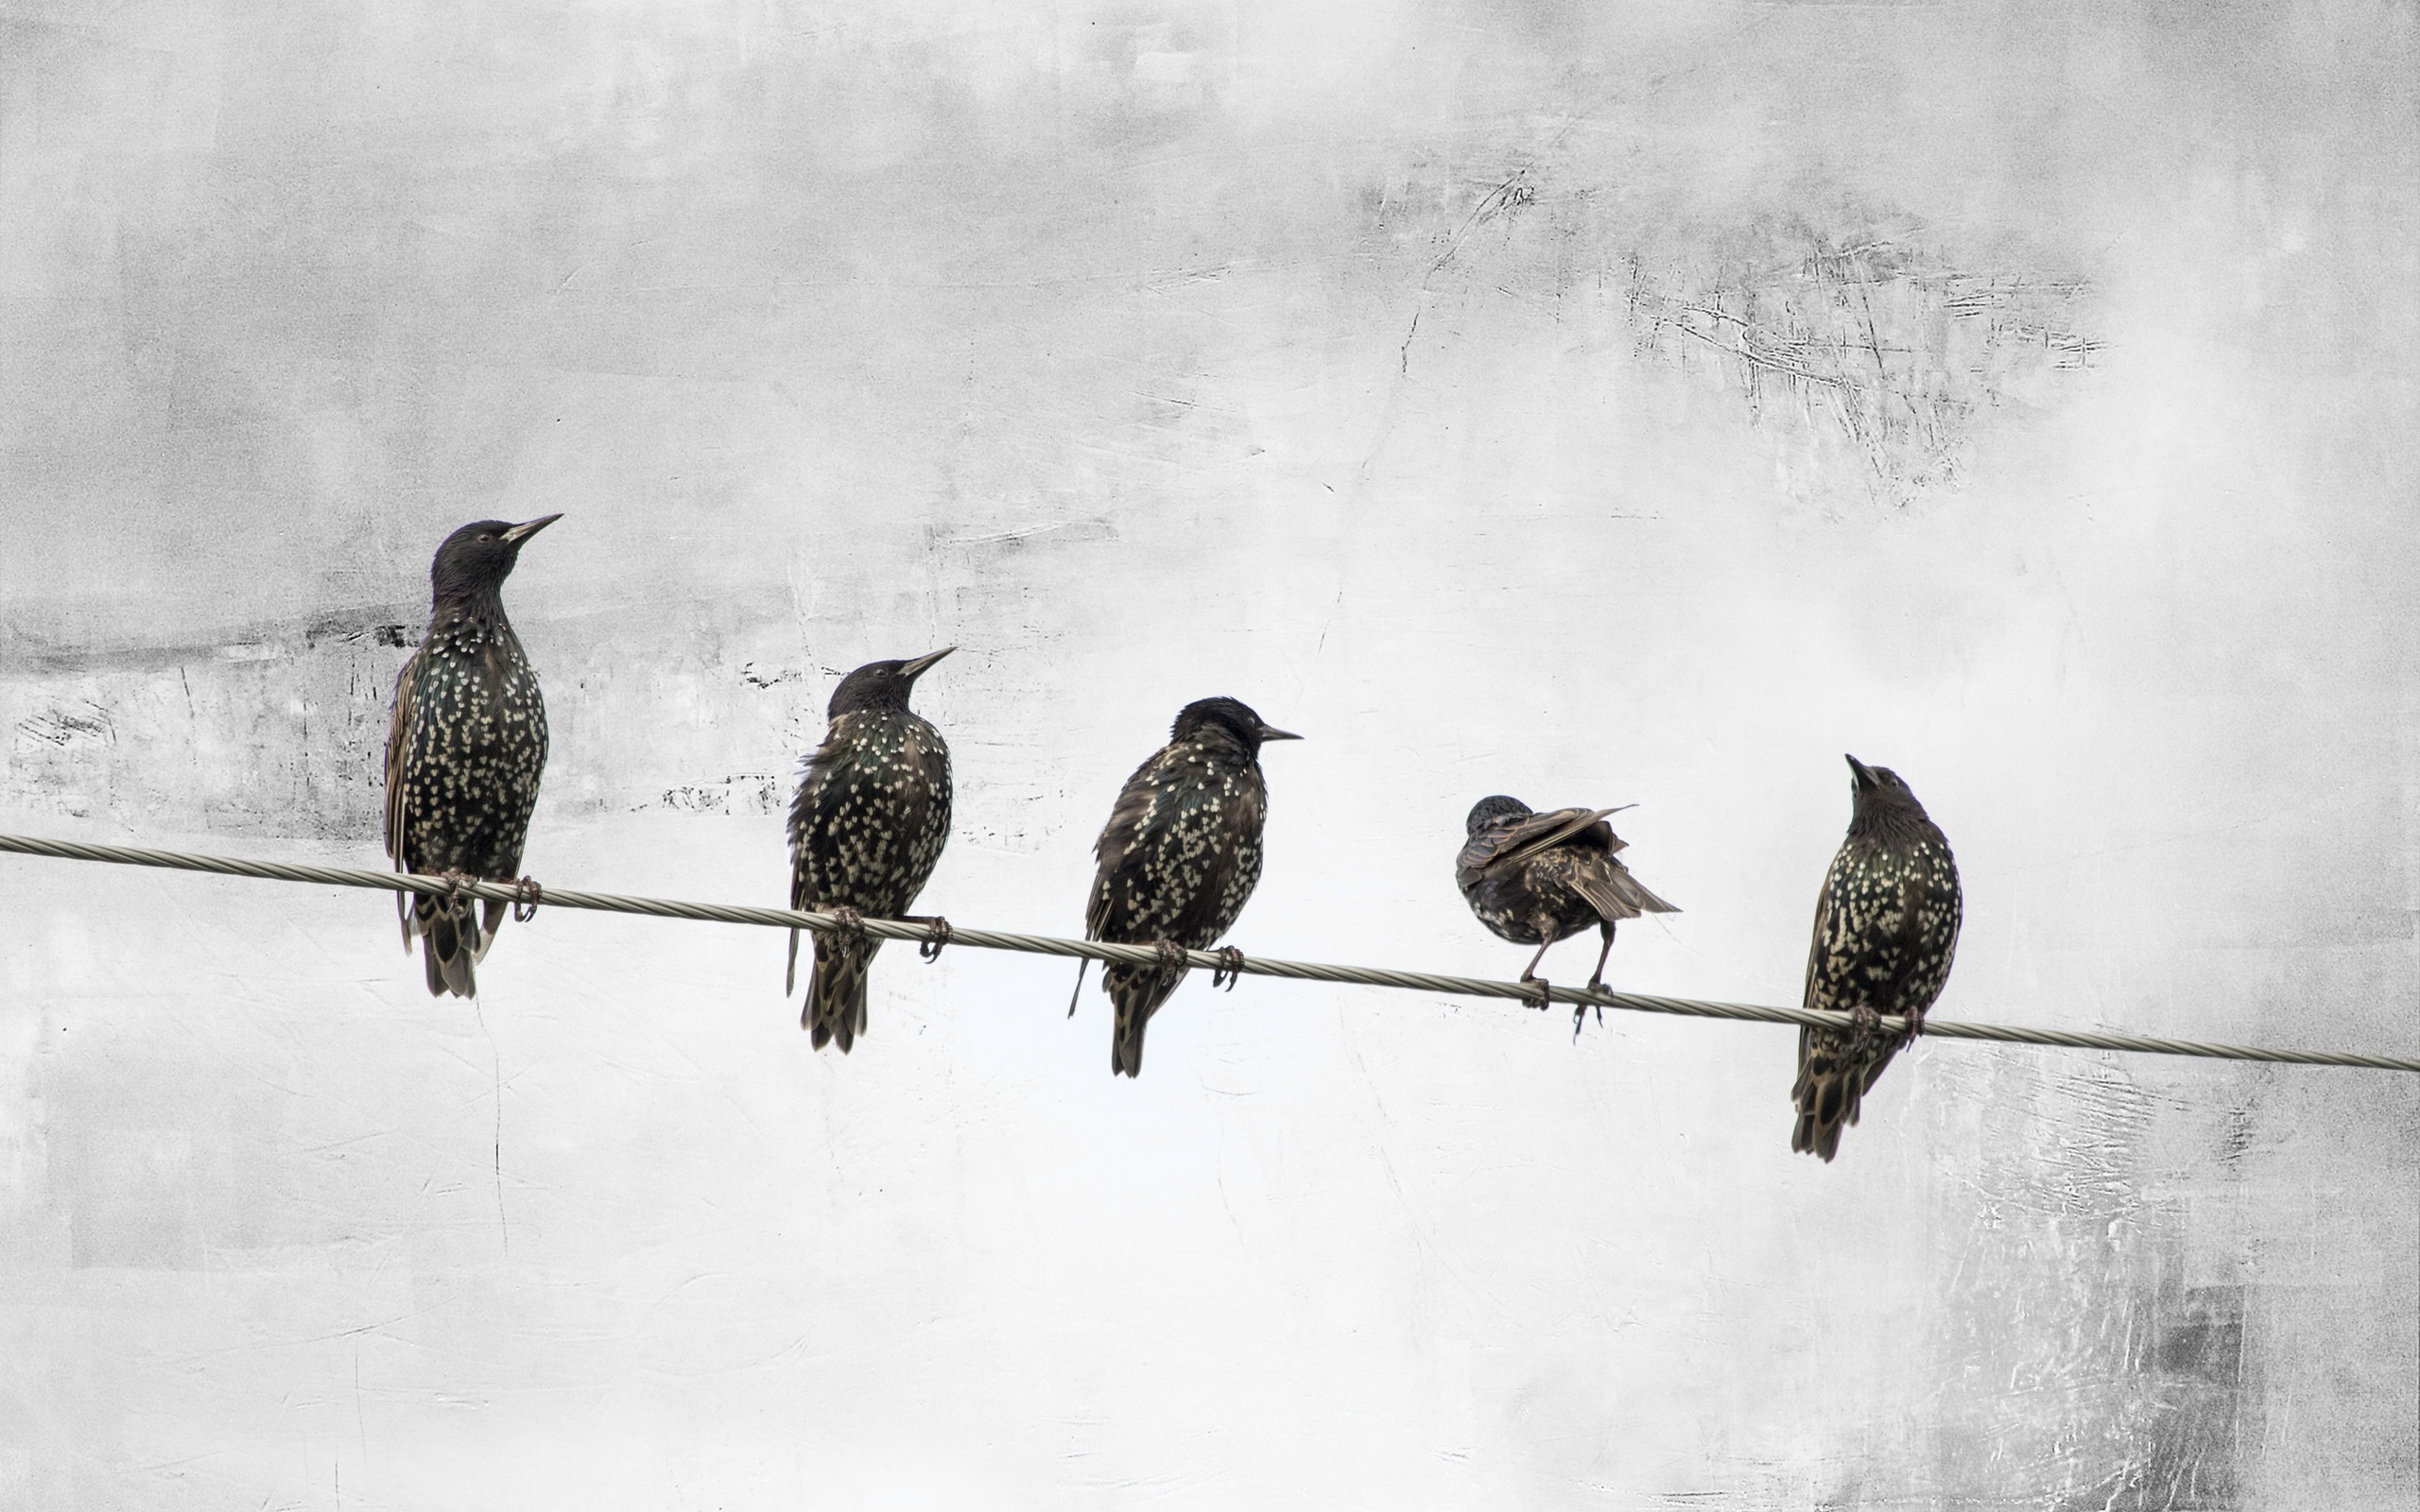 Wallpaper Five Birds Standing On Wire 2560x1600 Hd Picture Image